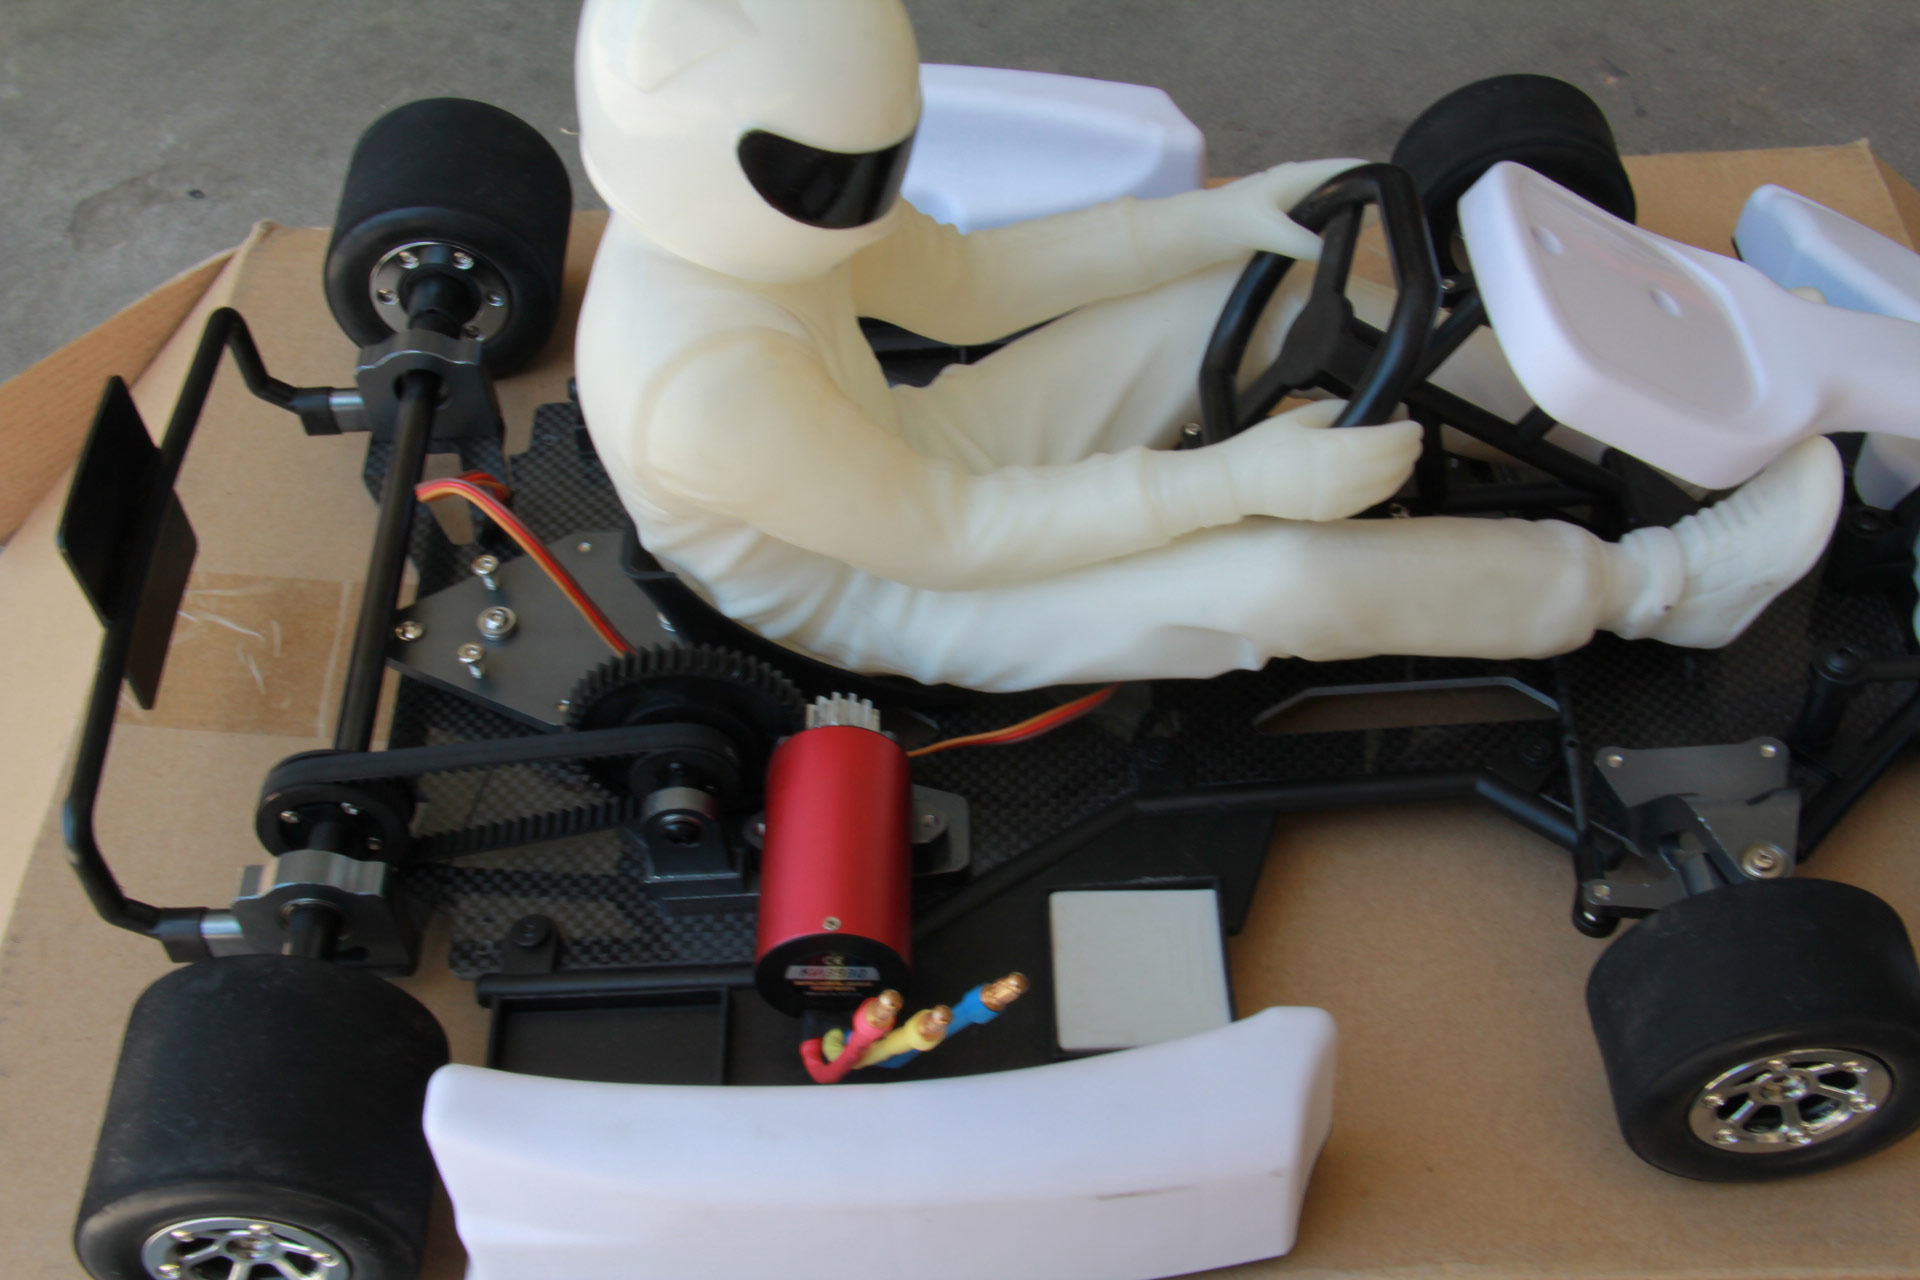 1 24 Scale Go Kart http://www.rctech.net/forum/r-c-items-sale-trade/633168-turnigy-1-4-scale-go-kart-arr.html